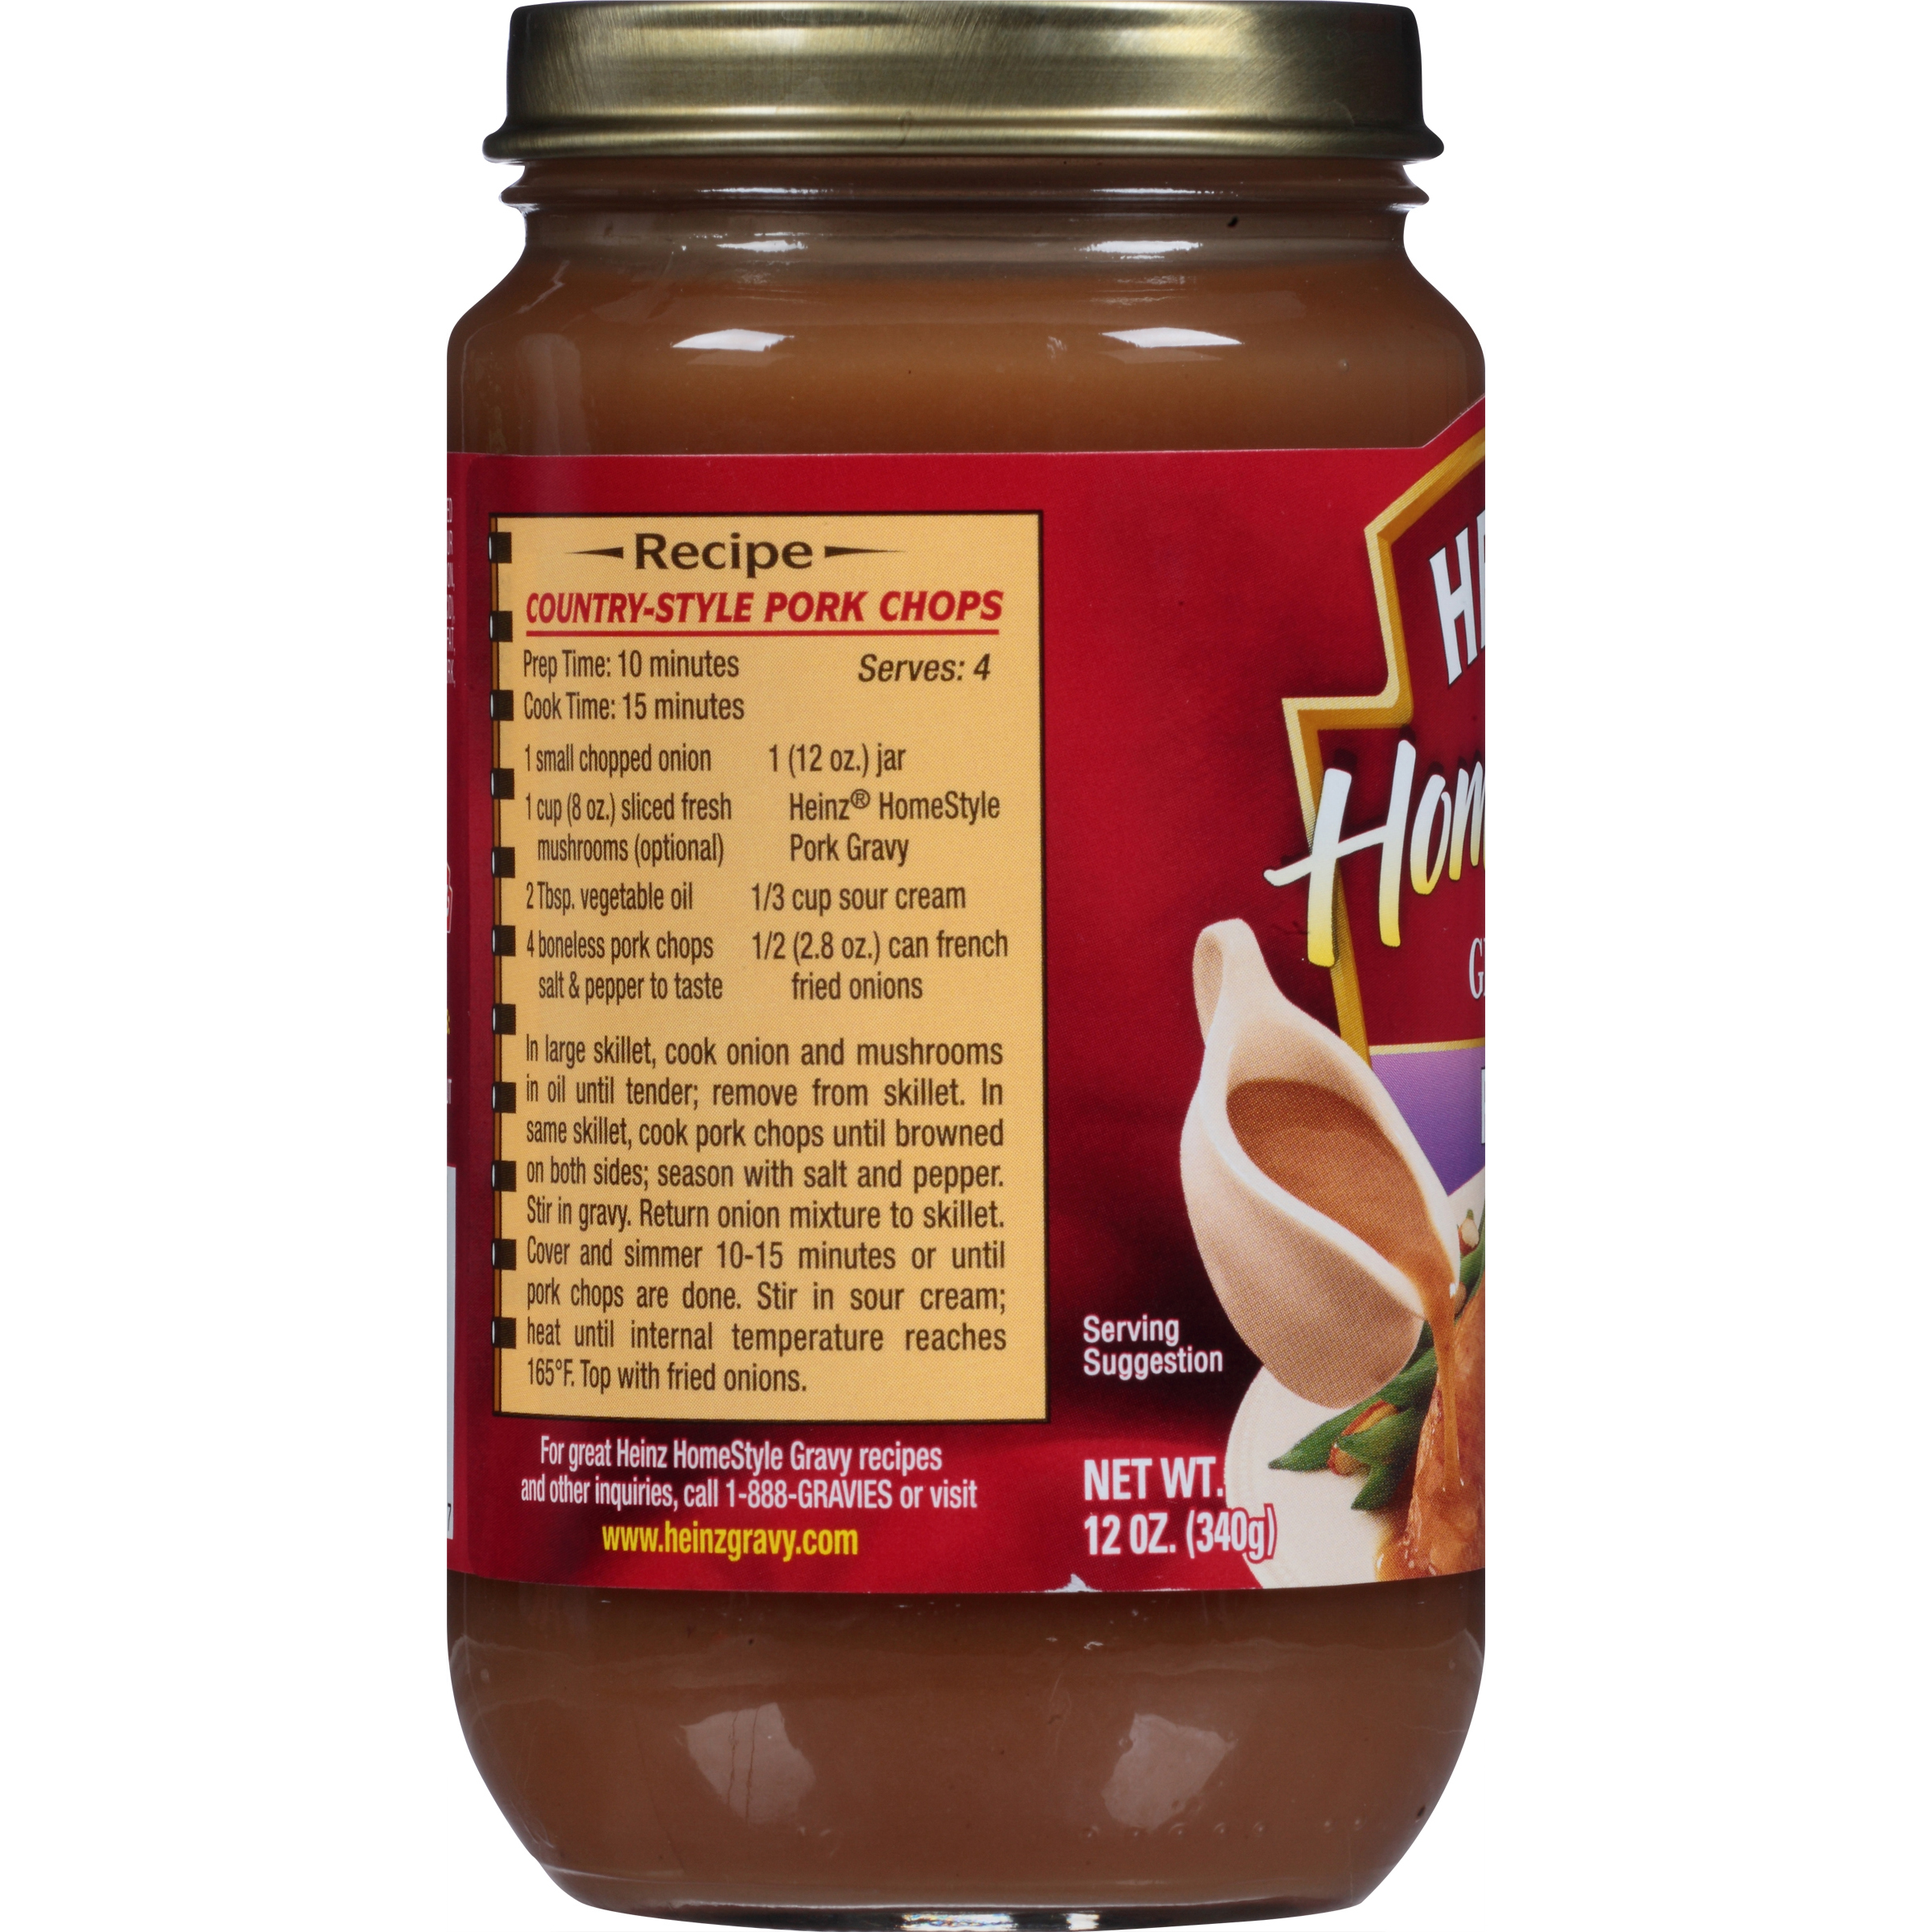 Heinz HomeStyle Pork Gravy 12 oz. Jar